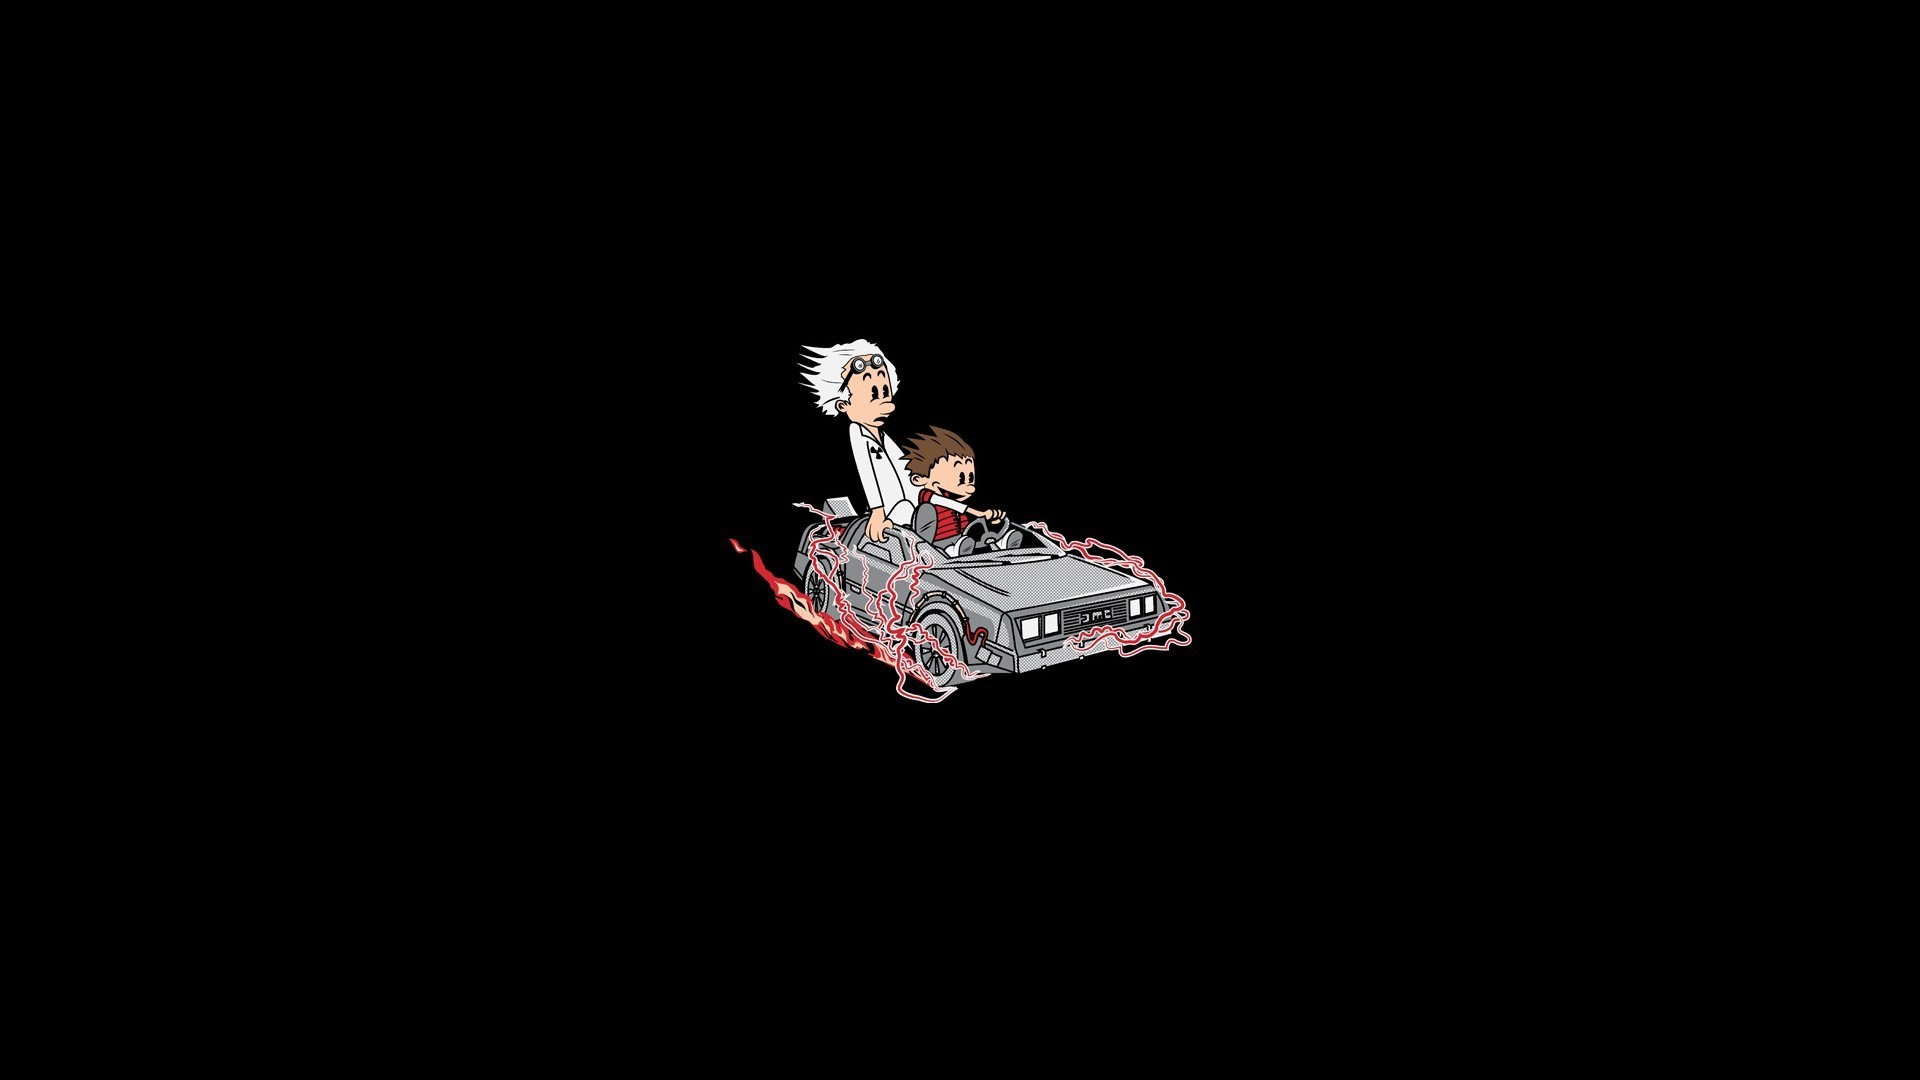 1920x1080 Back to the Future, Calvin and Hobbes Wallpapers HD / Desktop and Mobile  Backgrounds